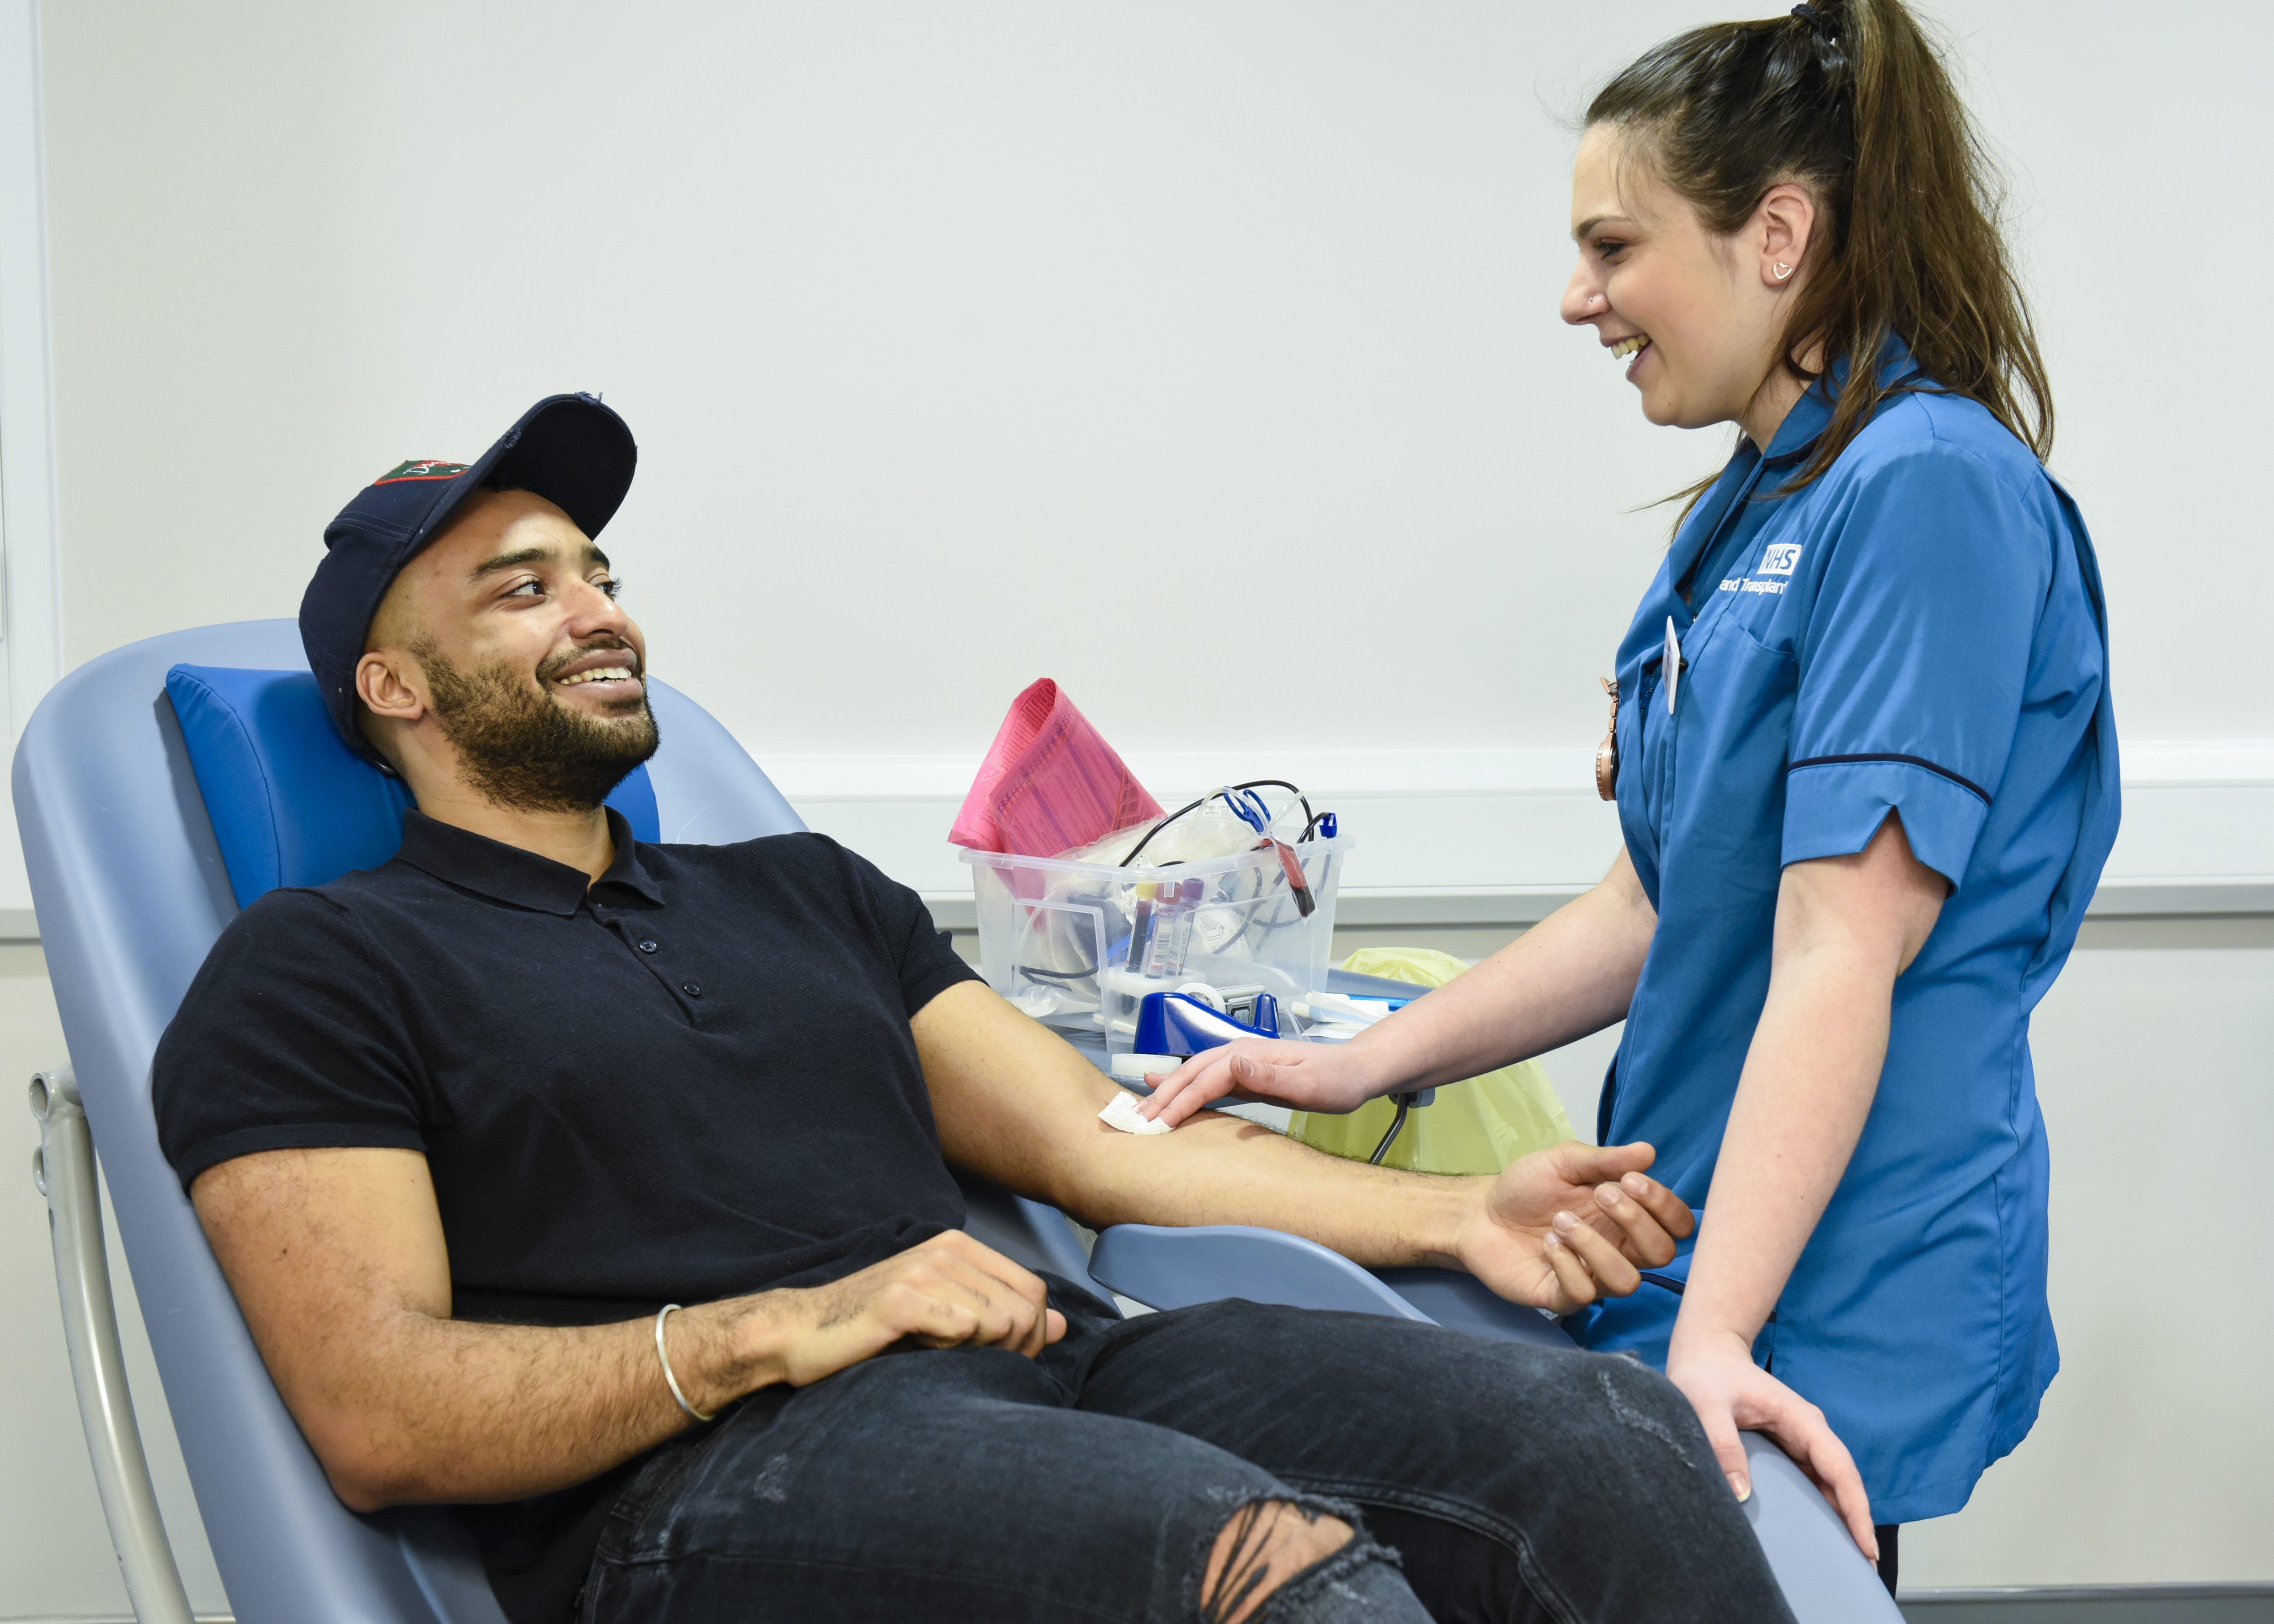 A donor carer swabs a donor's arm